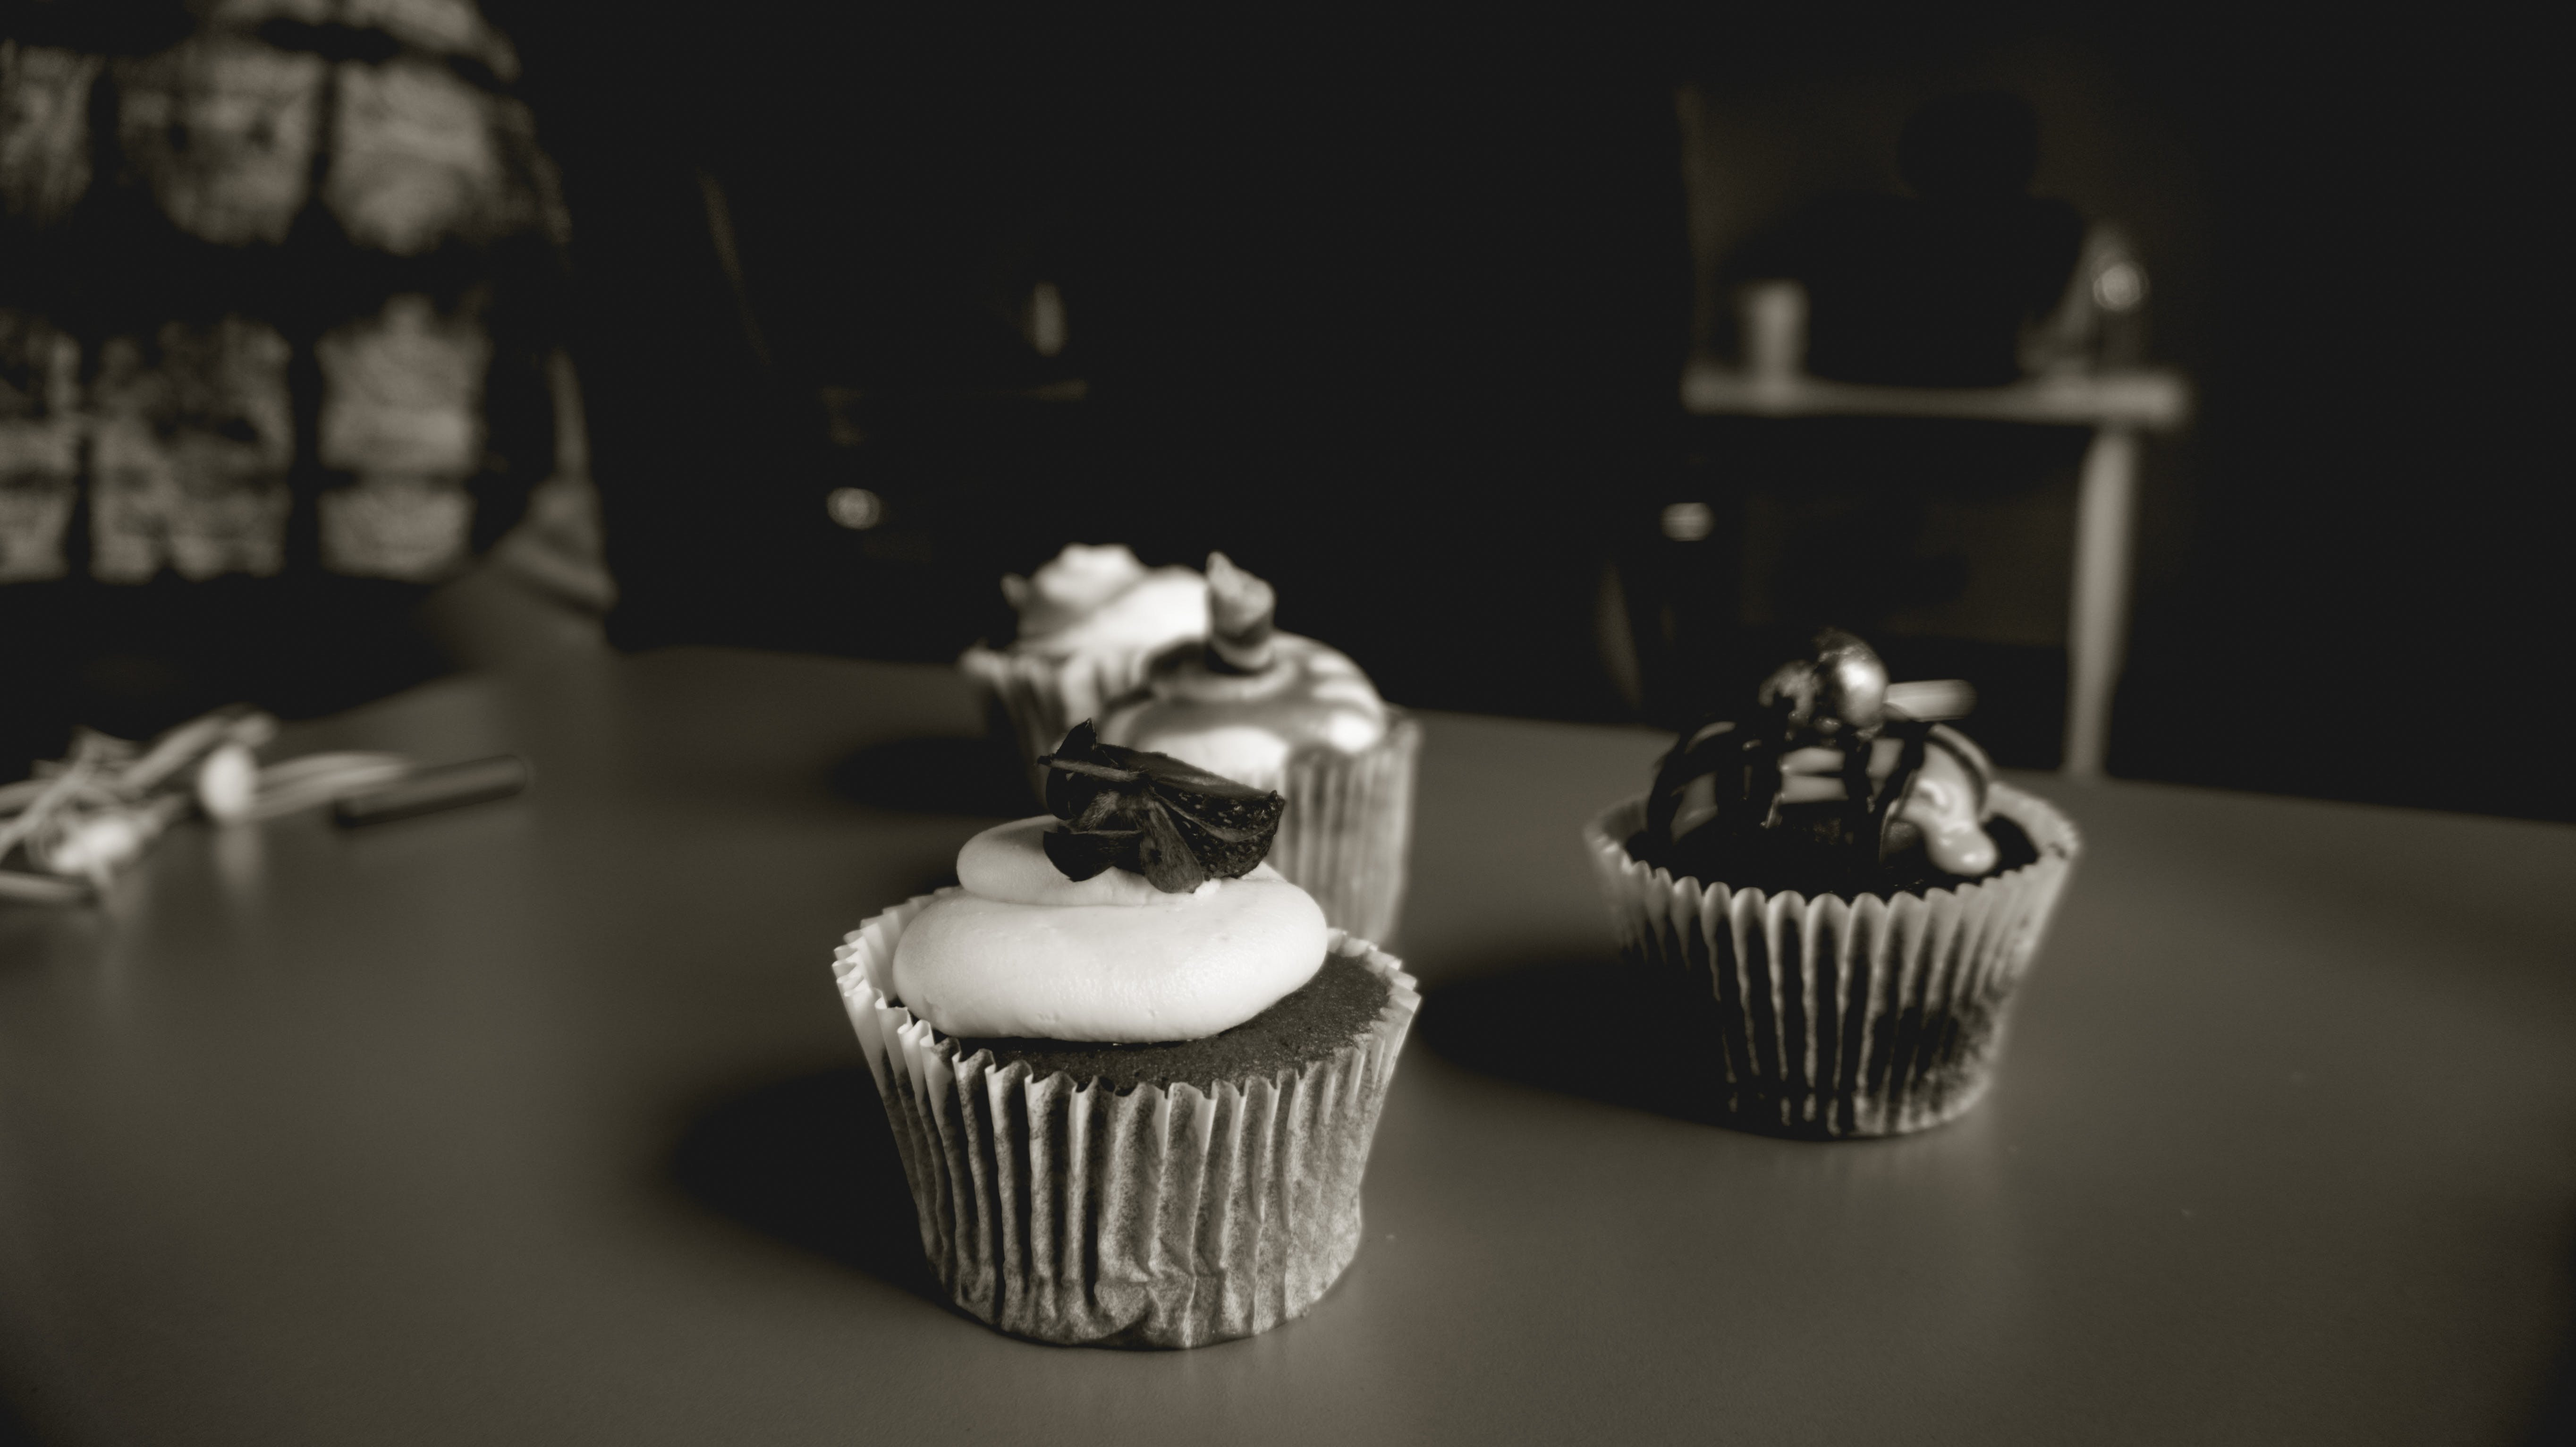 Free stock photo of photography, chocolate, cupcake, horizontal